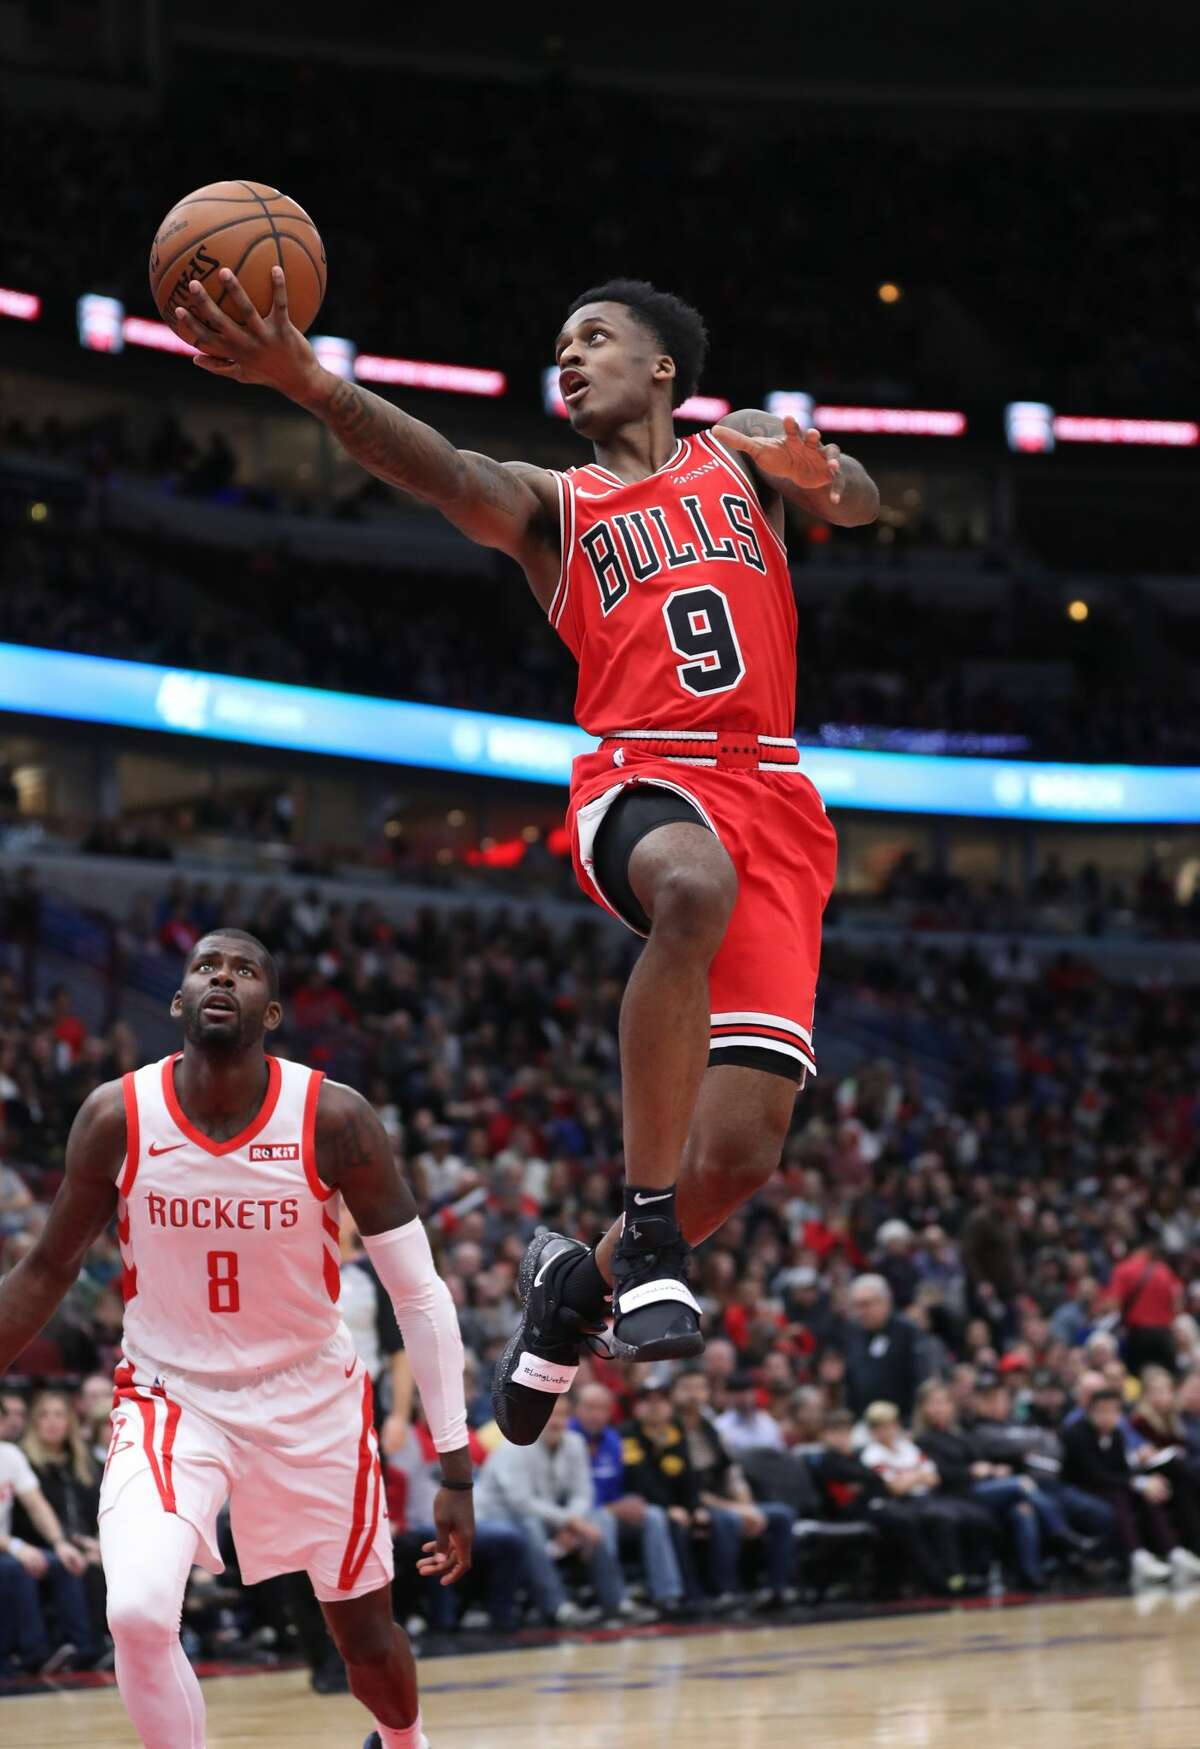 Chicago Bulls guard Antonio Blakeney (9) rises for a basket in the second quarter against the Houston Rockets at the United Center Saturday, Nov. 3, 2018, in Chicago. The Rockets beat the Bulls 96-88. (John J. Kim/Chicago Tribune/TNS)